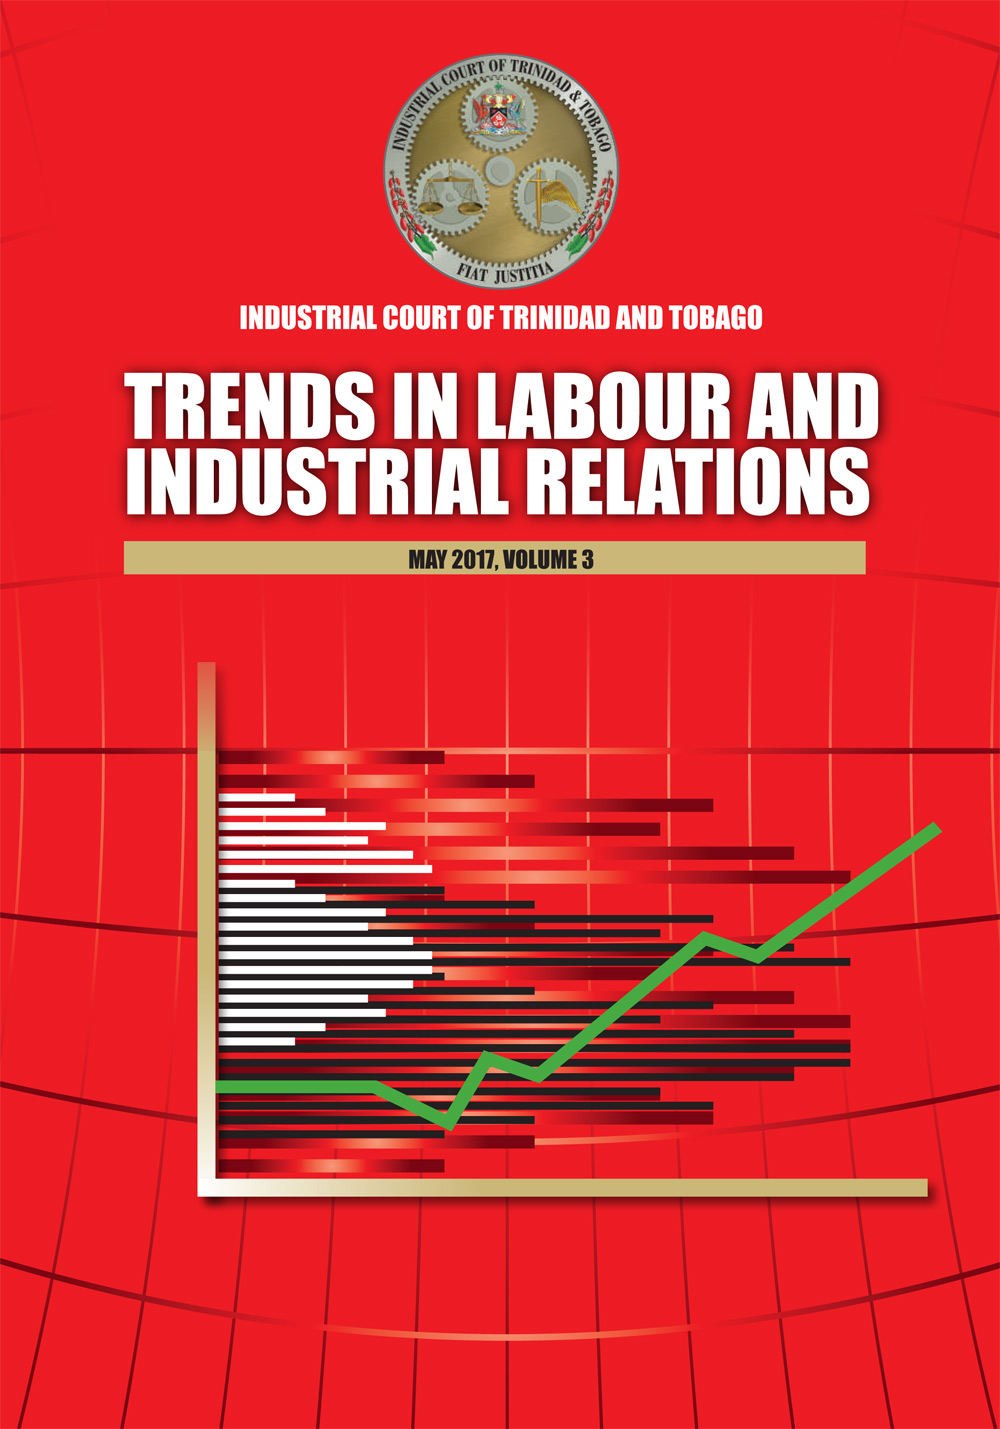 Trends in Labour and Industrial Relations Bulletin - May 2017